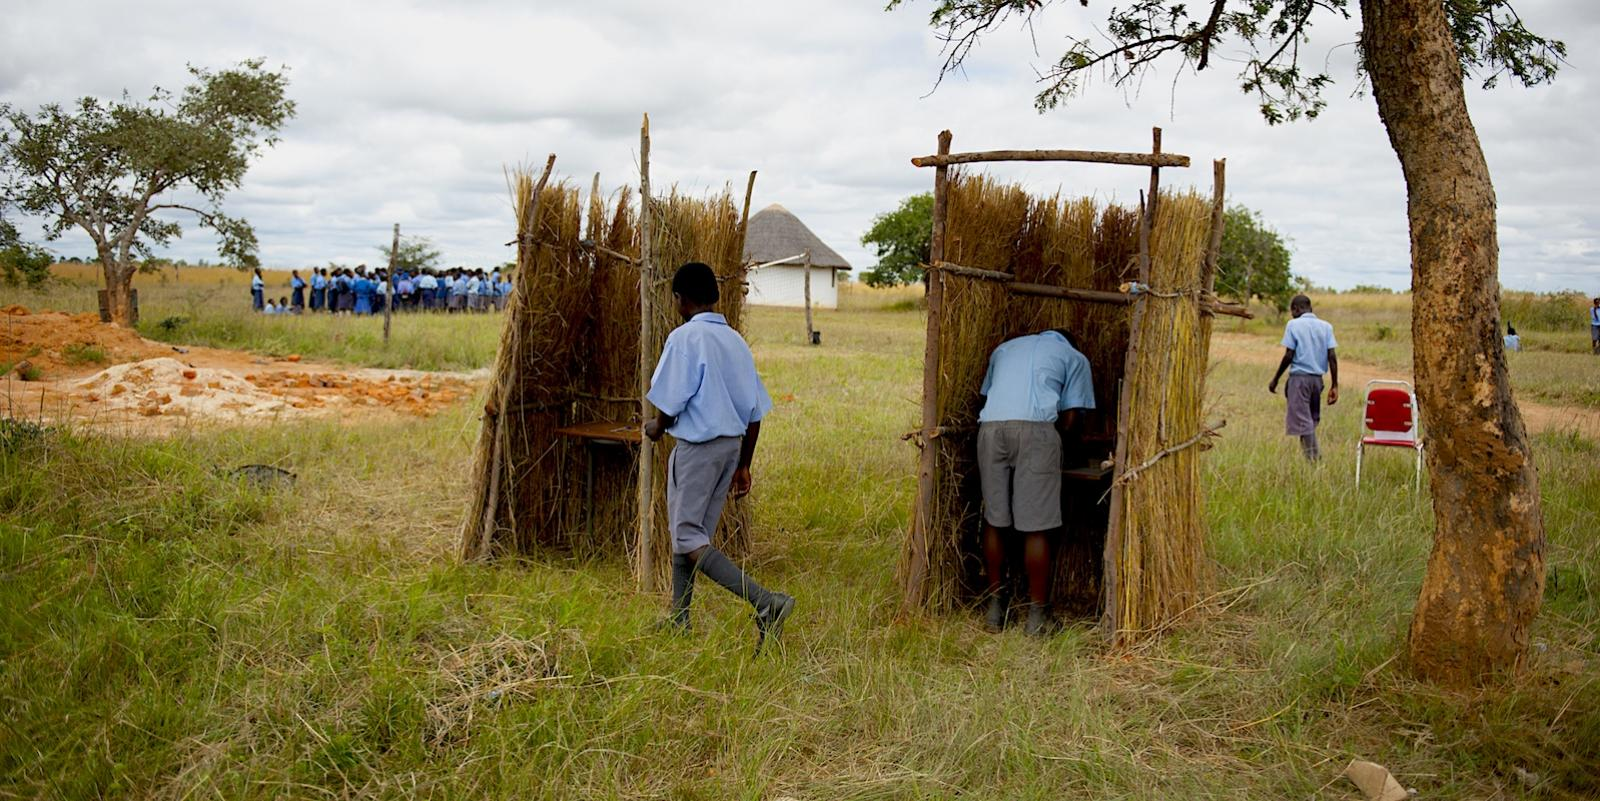 Two boys voting in booths made of grass